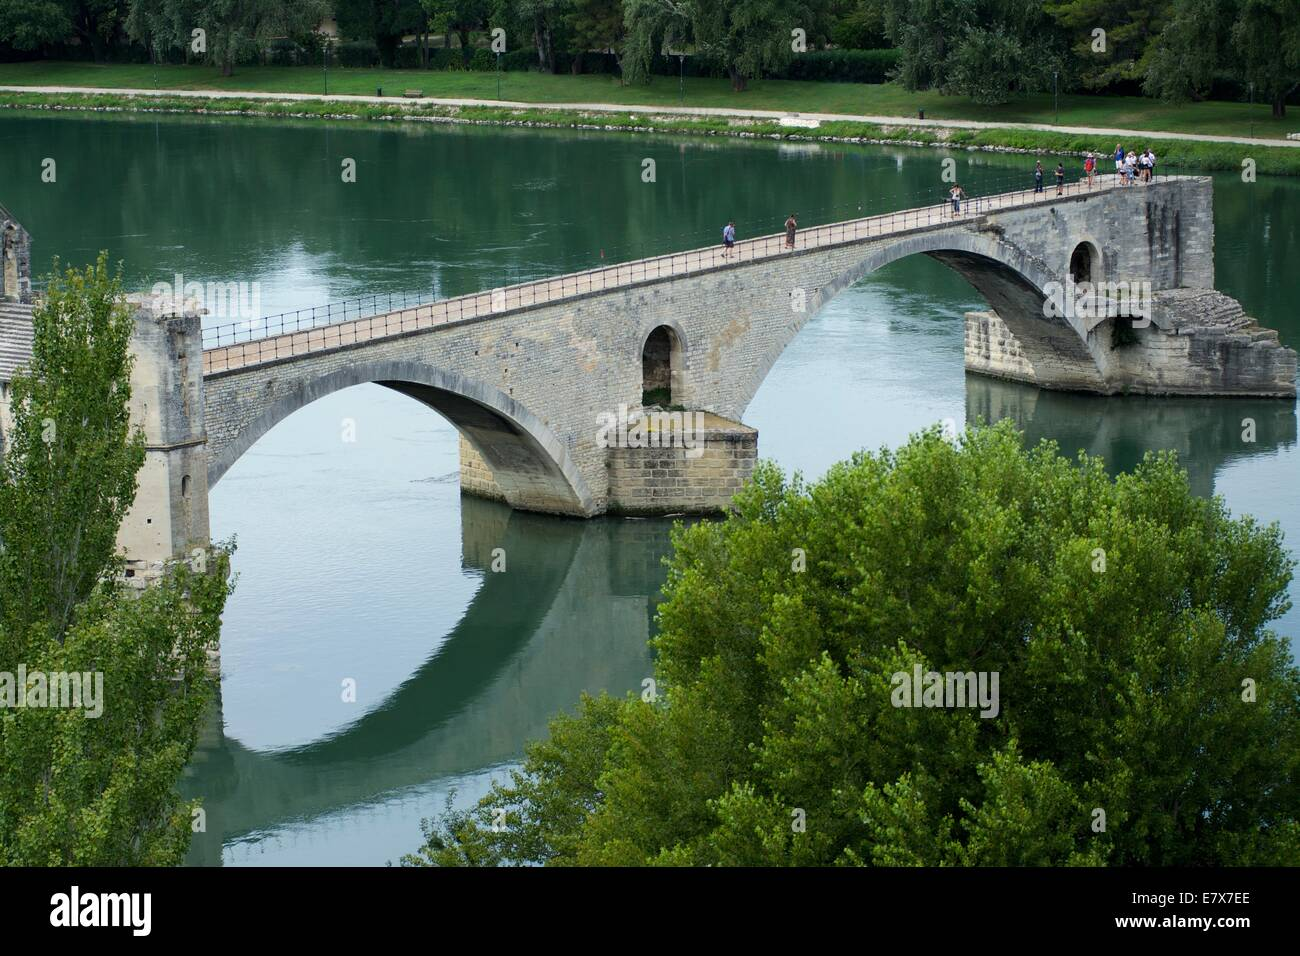 Saint Benezet bridge over the river Rhone , Avignon, Vaucluse, Provence-Alpes-Cote d'Azur, France, Europe. - Stock Image